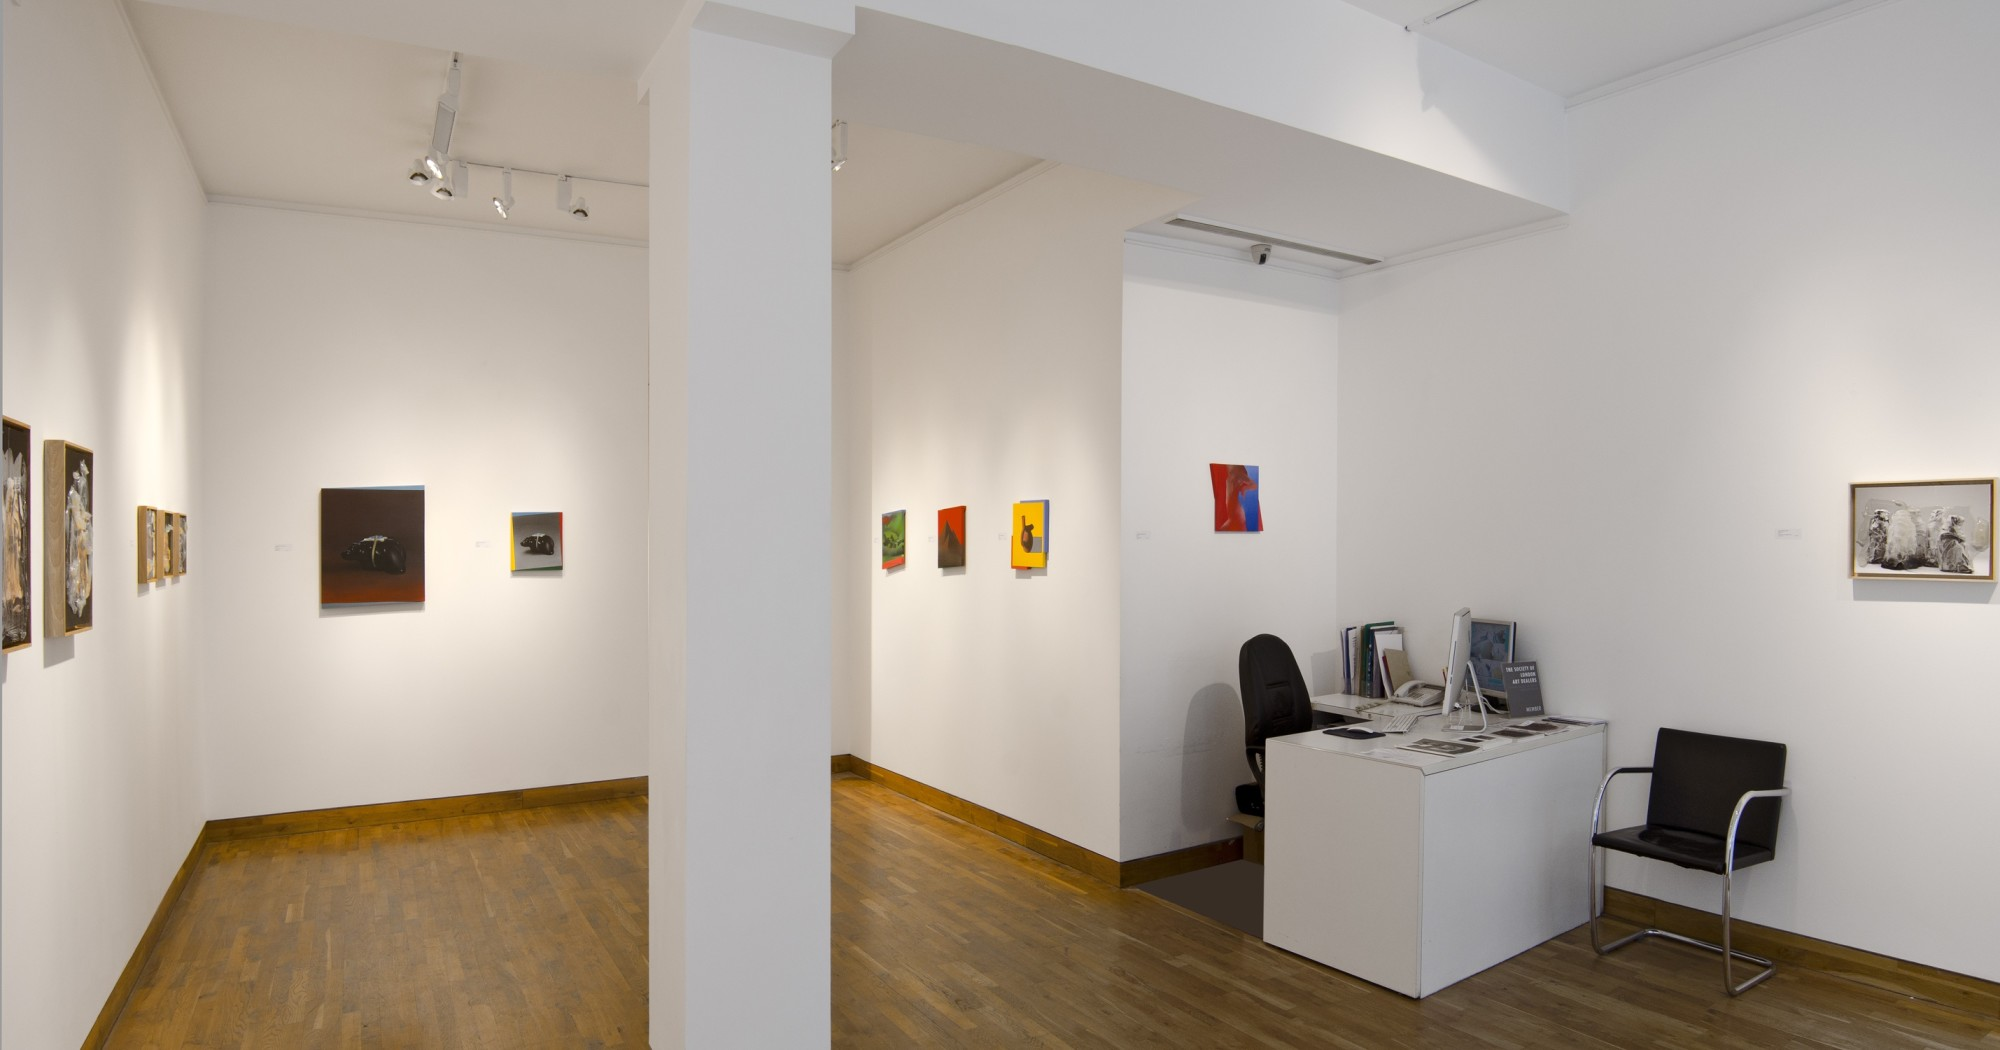 """<span class=""""link fancybox-details-link""""><a href=""""/exhibitions/70/works/image_standalone173/"""">View Detail Page</a></span><p>ANTONY DONALDSON & JOE GOODE 